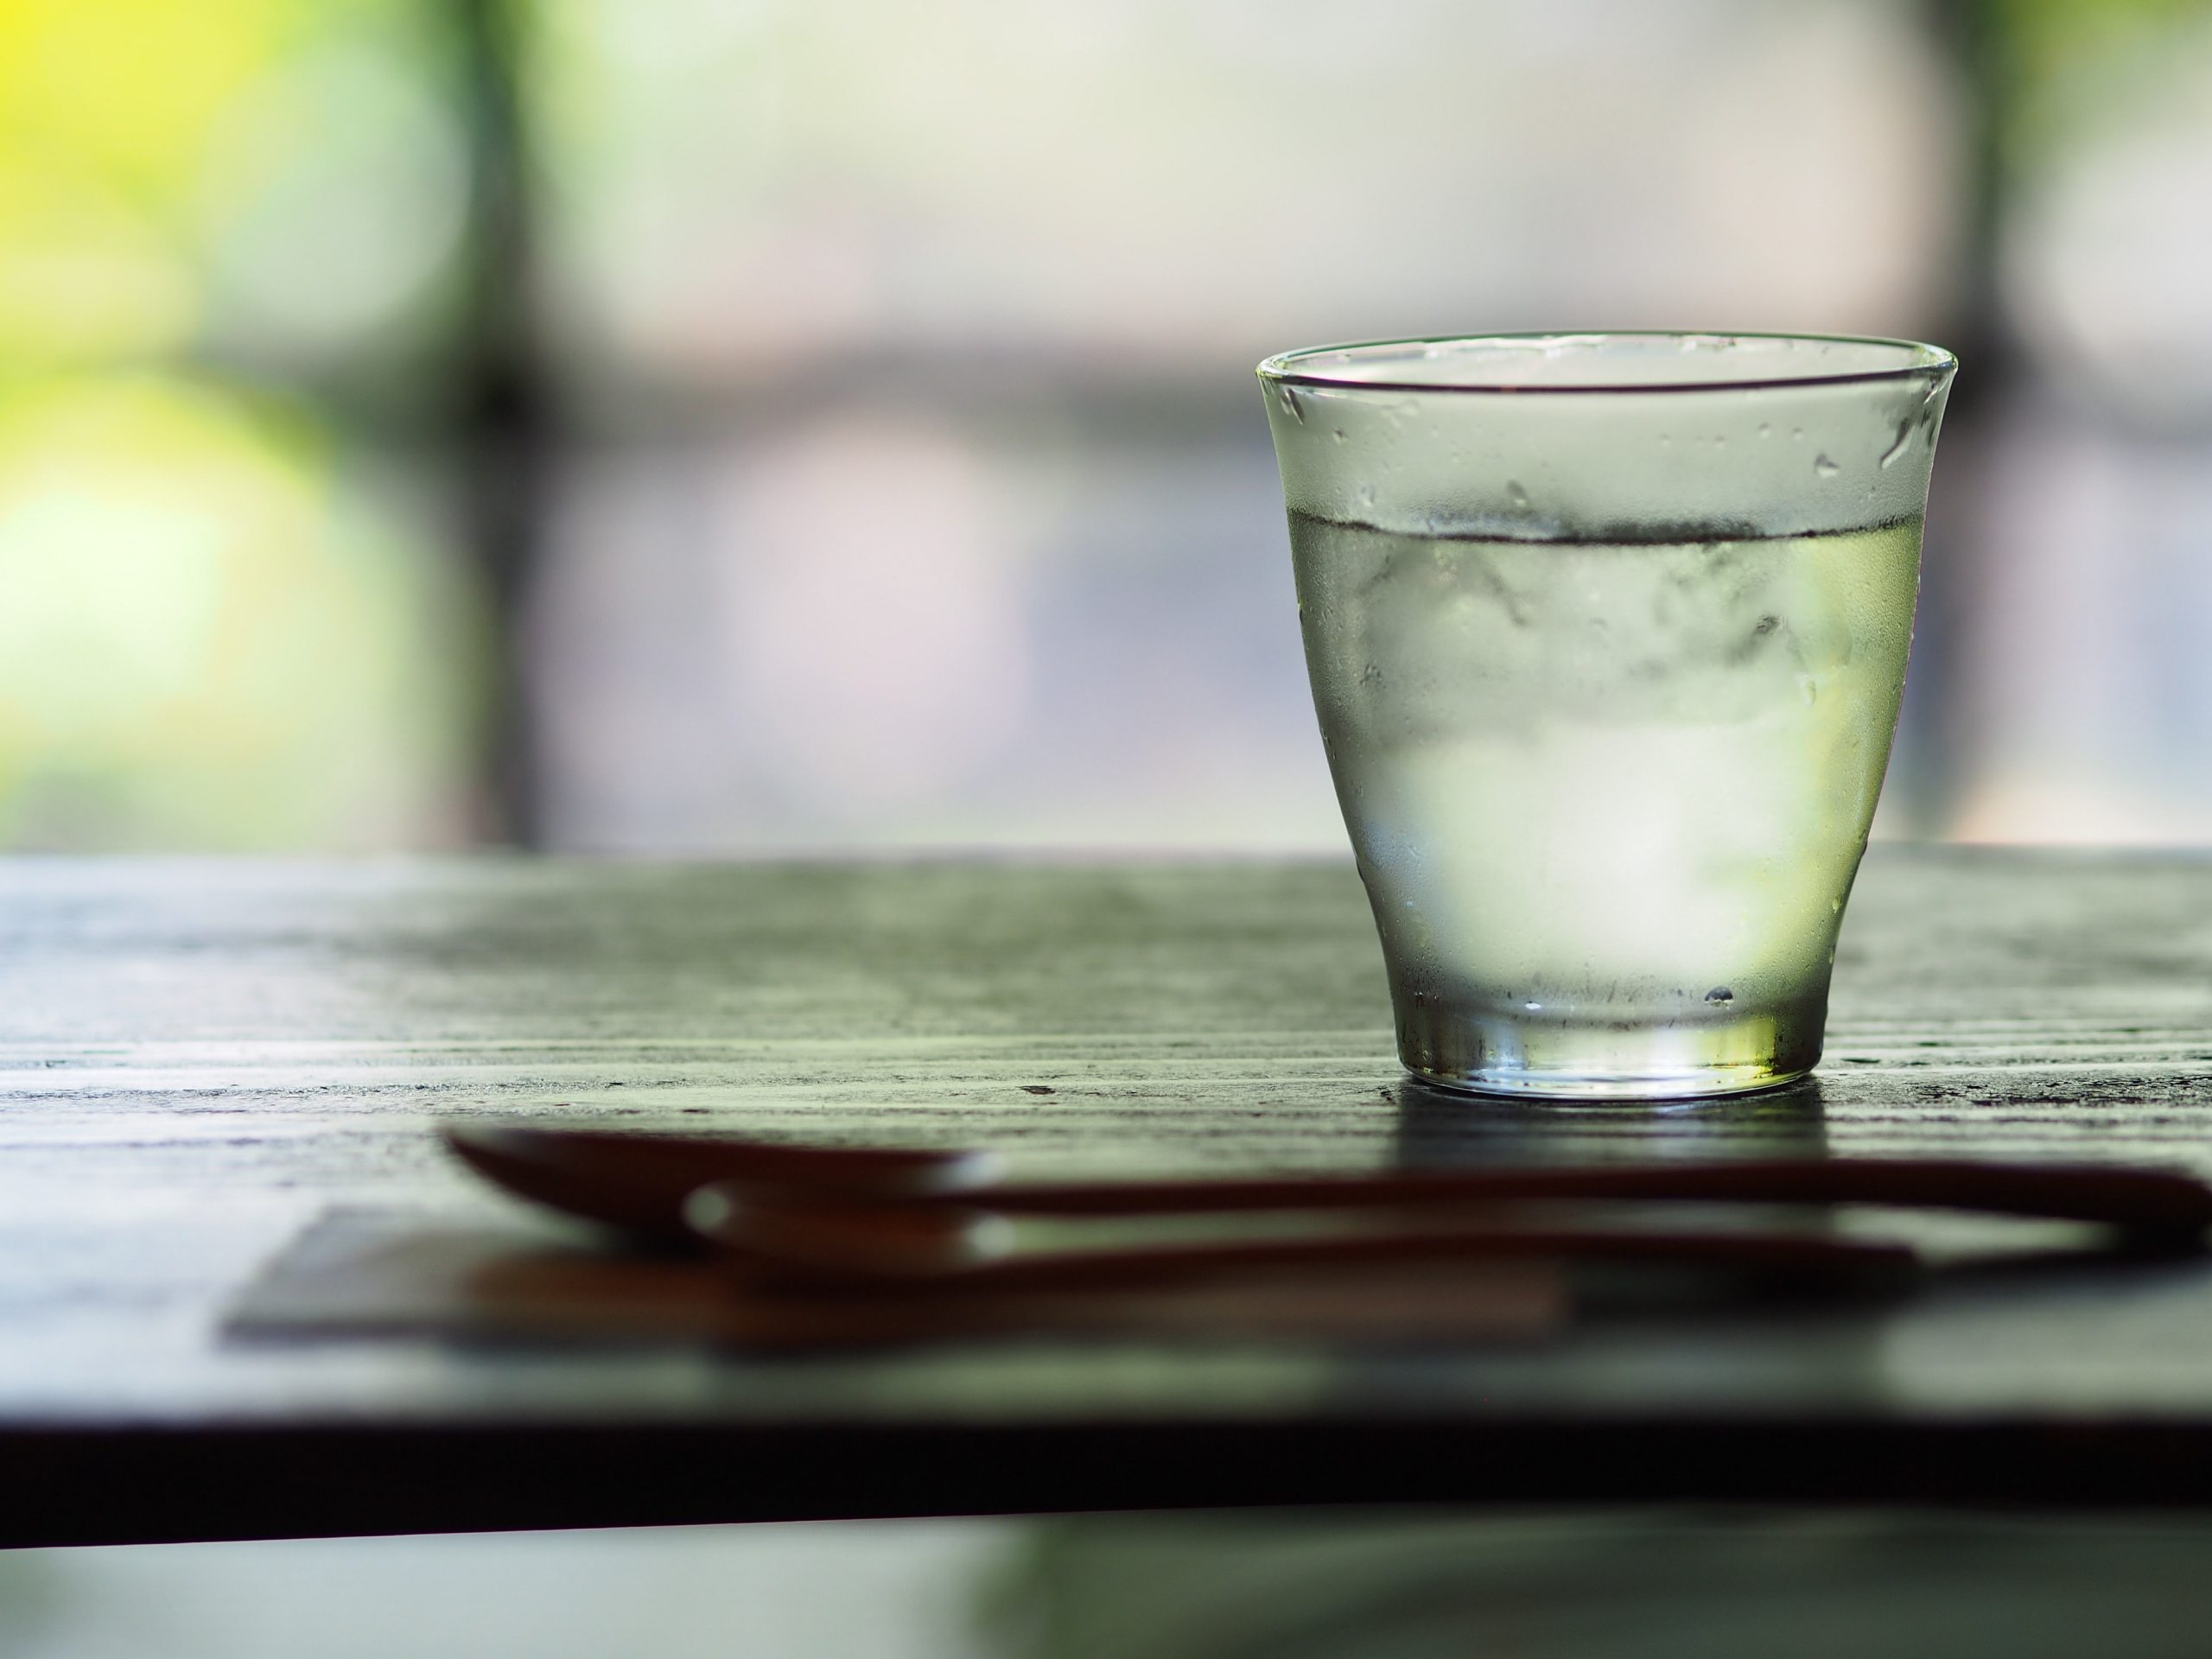 Chilled glass of water on a table